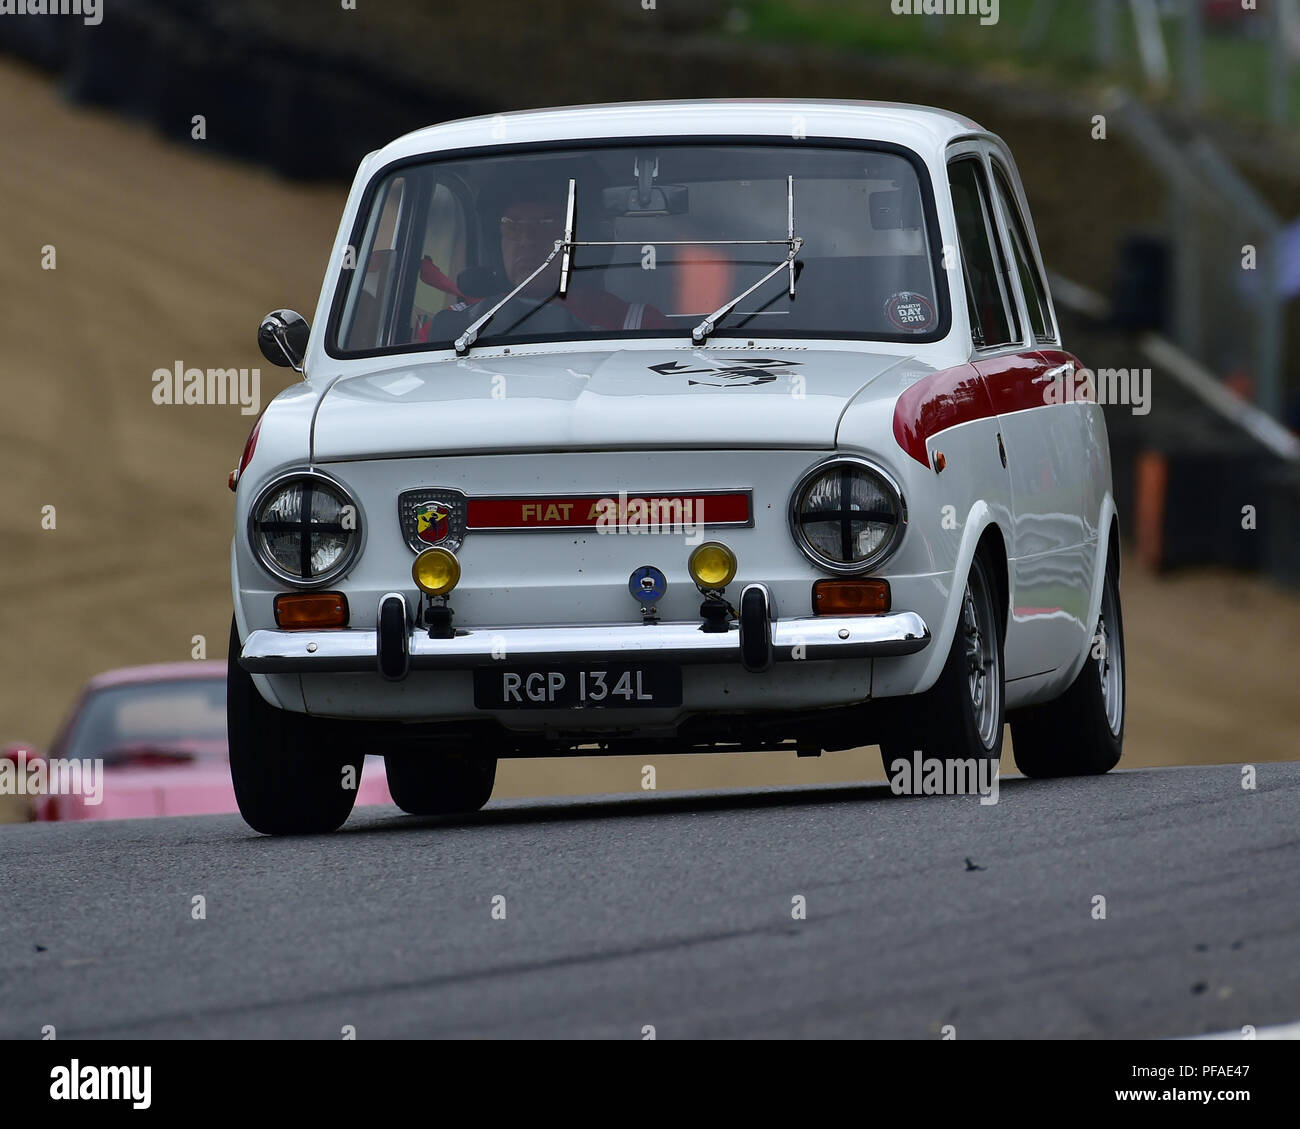 FIAT Abarth, Historic Abarth Demonstration, Special Italian Car demo, Festival Italia, Brands Hatch, Kent, England, August 19th, 2018. - Stock Image